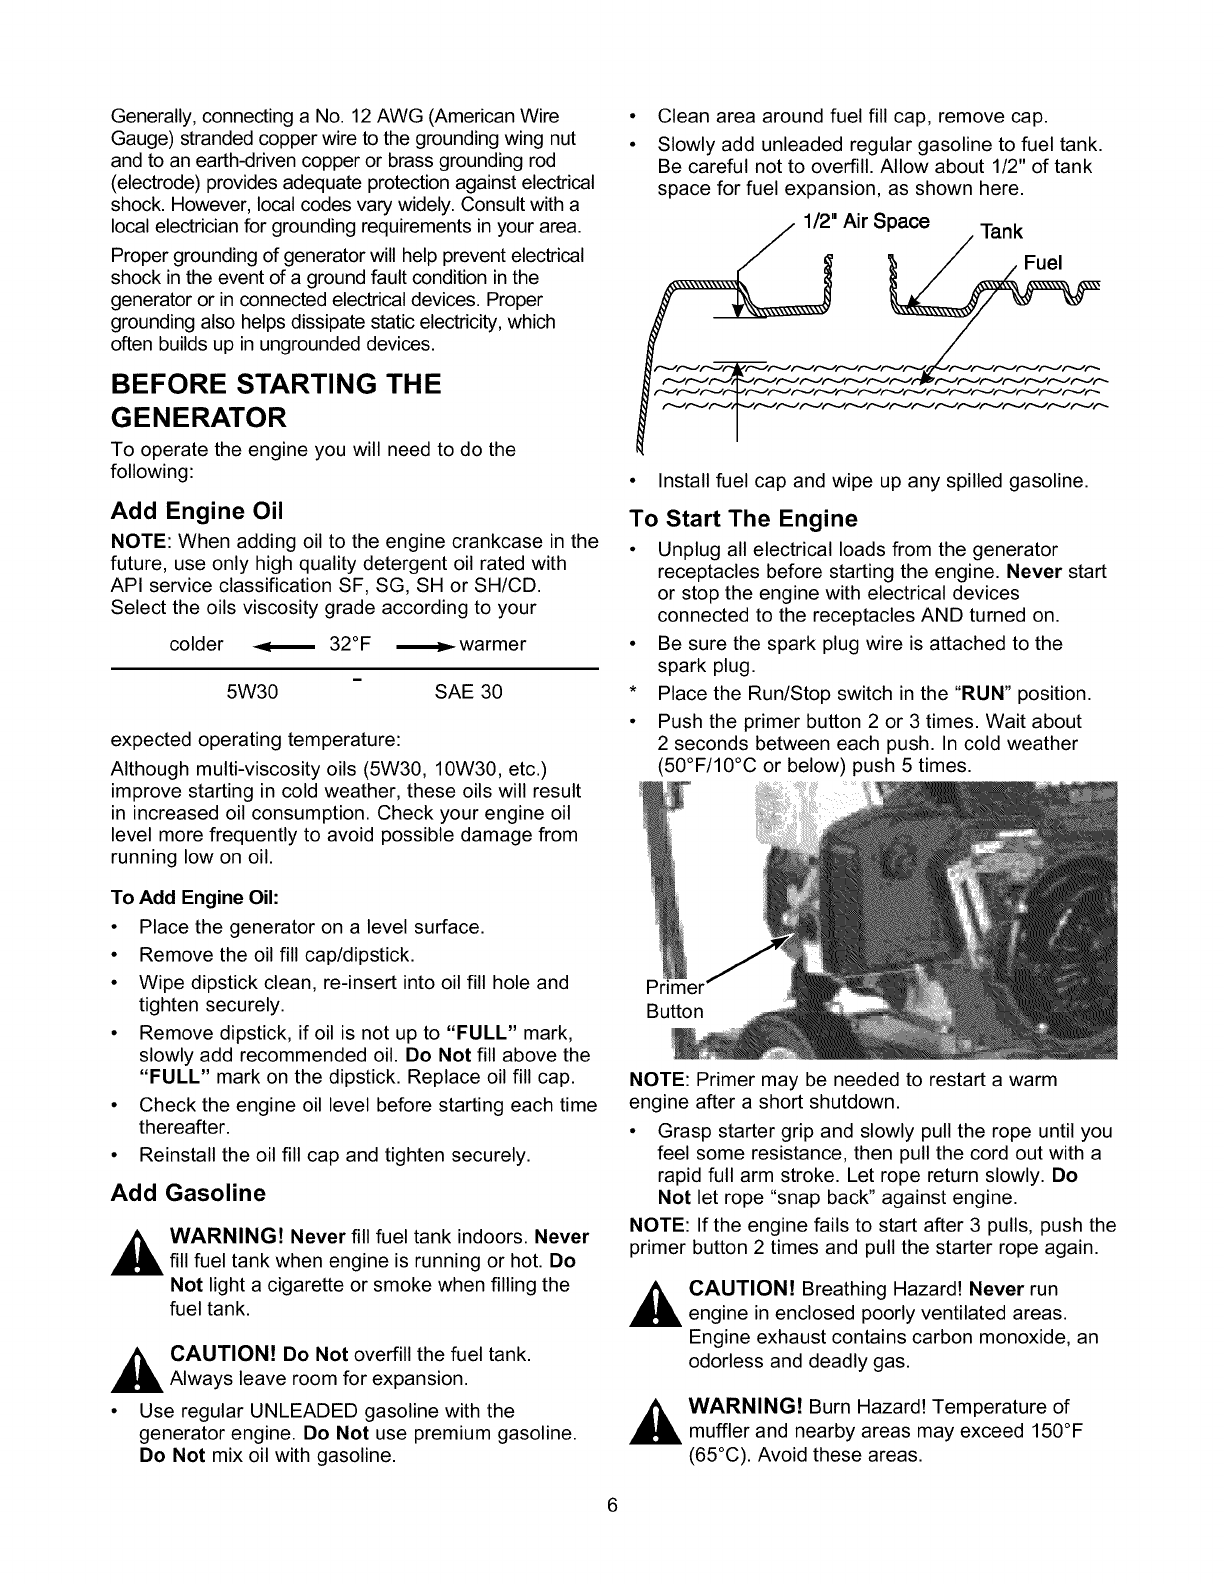 Craftsman 580327120 User Manual 2500W GENERATOR ON A 2 WHEEL